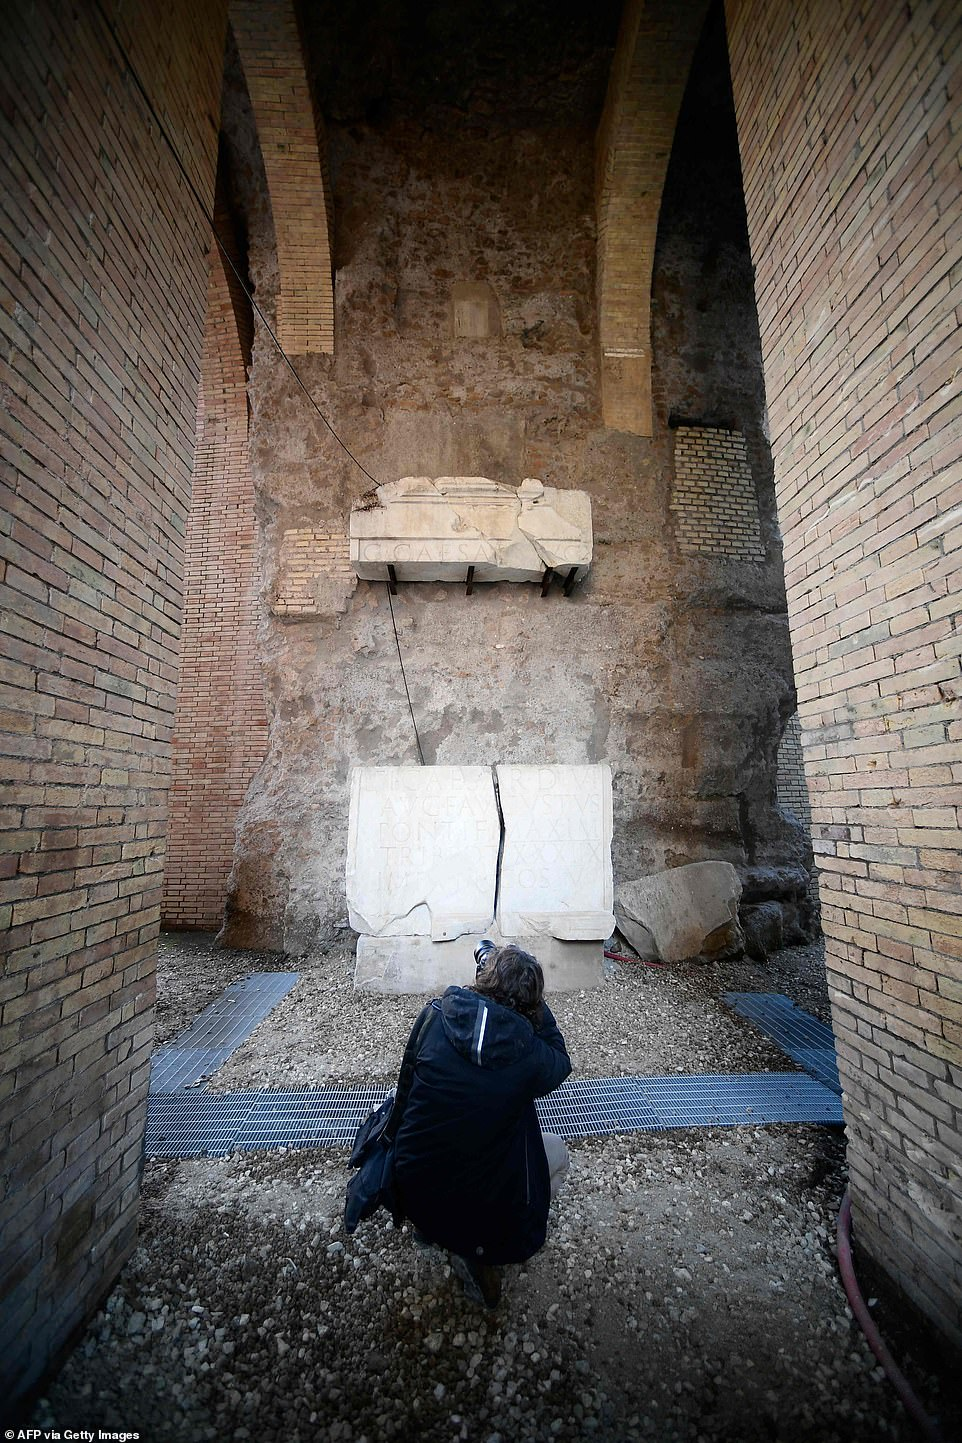 Augustus had the mausoleum built for himself and the imperial family, and it also houses the bones and ashes of Emperors Vespasian, Nero and Tiberius, each indicated with a marble plaque